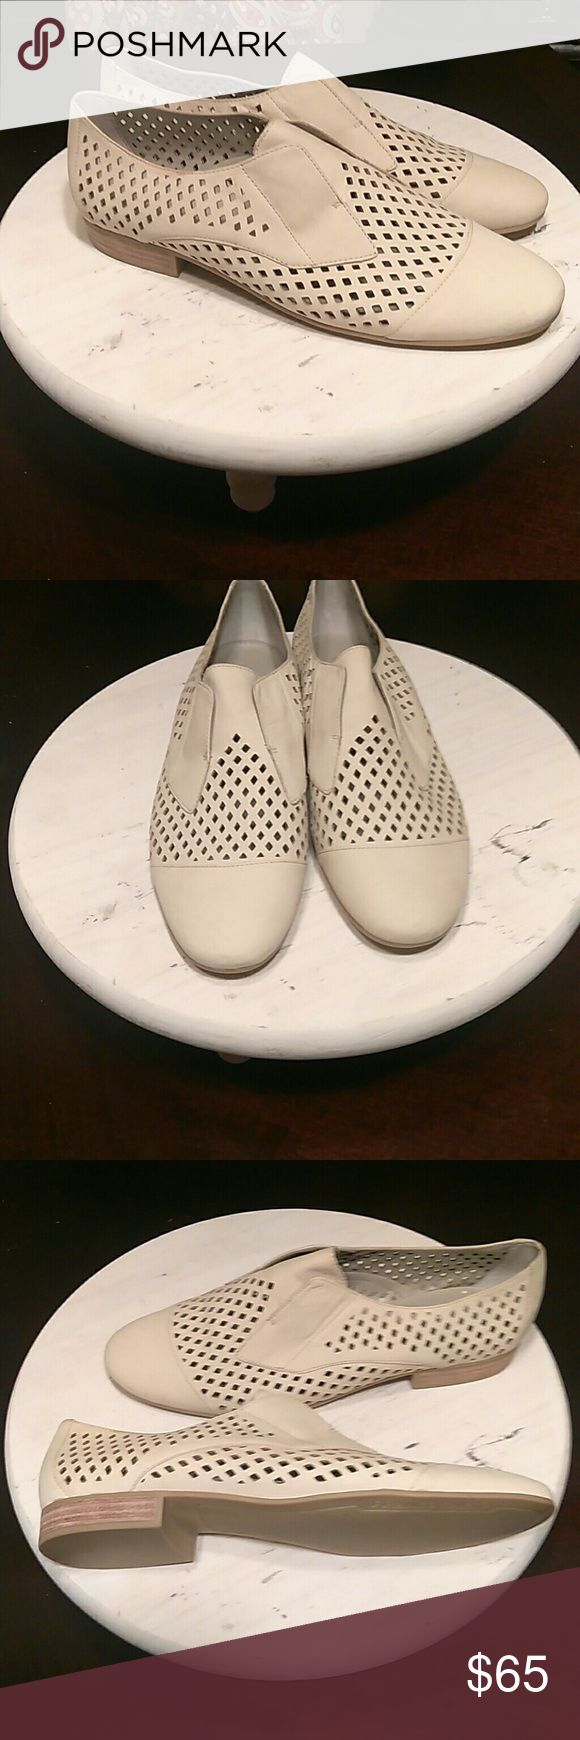 4 DAY SALE!!! Franco Sarto-Anderson Oxford Super cute and comfy Oxford that lets the air blown in when wearing!!! Perfect😉 Great for any look your going for, and any season!!! Great condition inside and out, with no scuffs or stains anywhere!!! Let's make some offers ladies!!! Franco Sarto Shoes Flats & Loafers